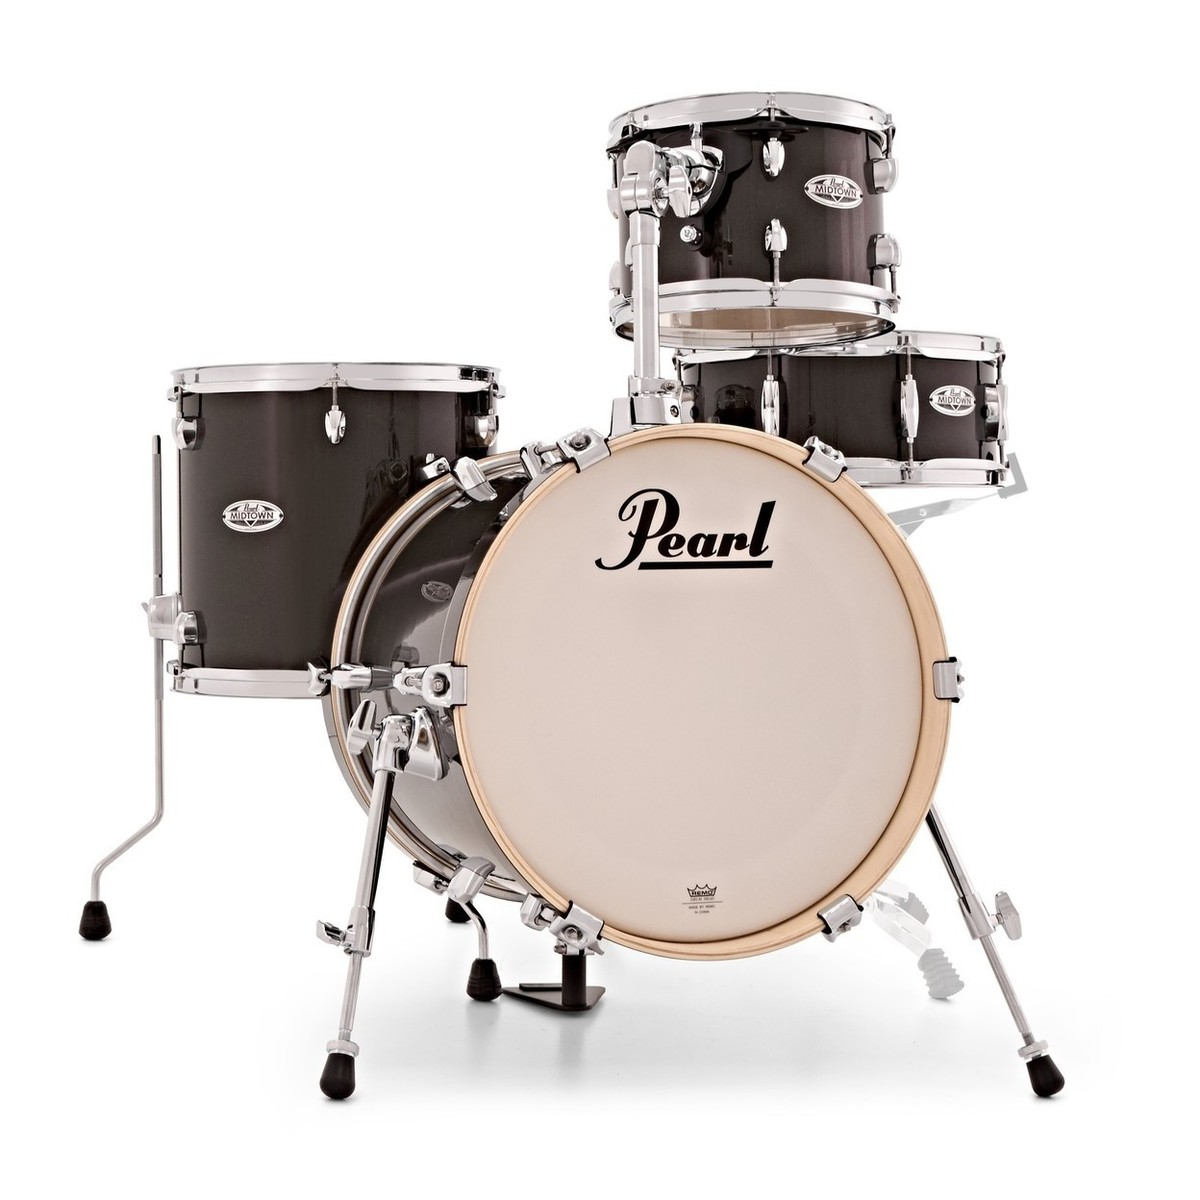 Pearl Midtown 4 Piece Compact Shell Pack Black Gold Sparkle - Box Opened